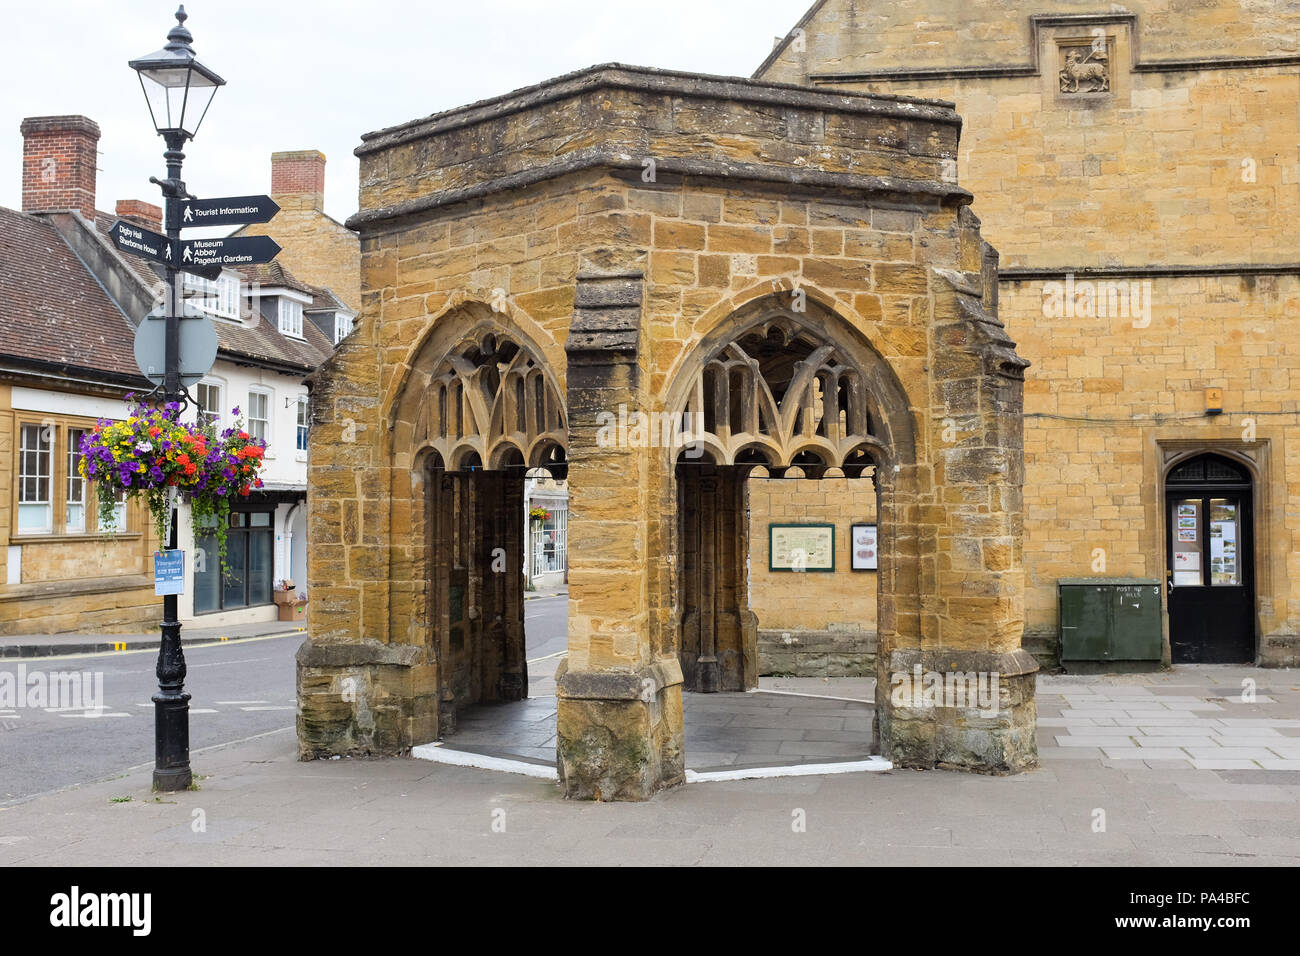 The Conduit at the bottom of Cheap Street in Sherborne, Dorset, England. - Stock Image